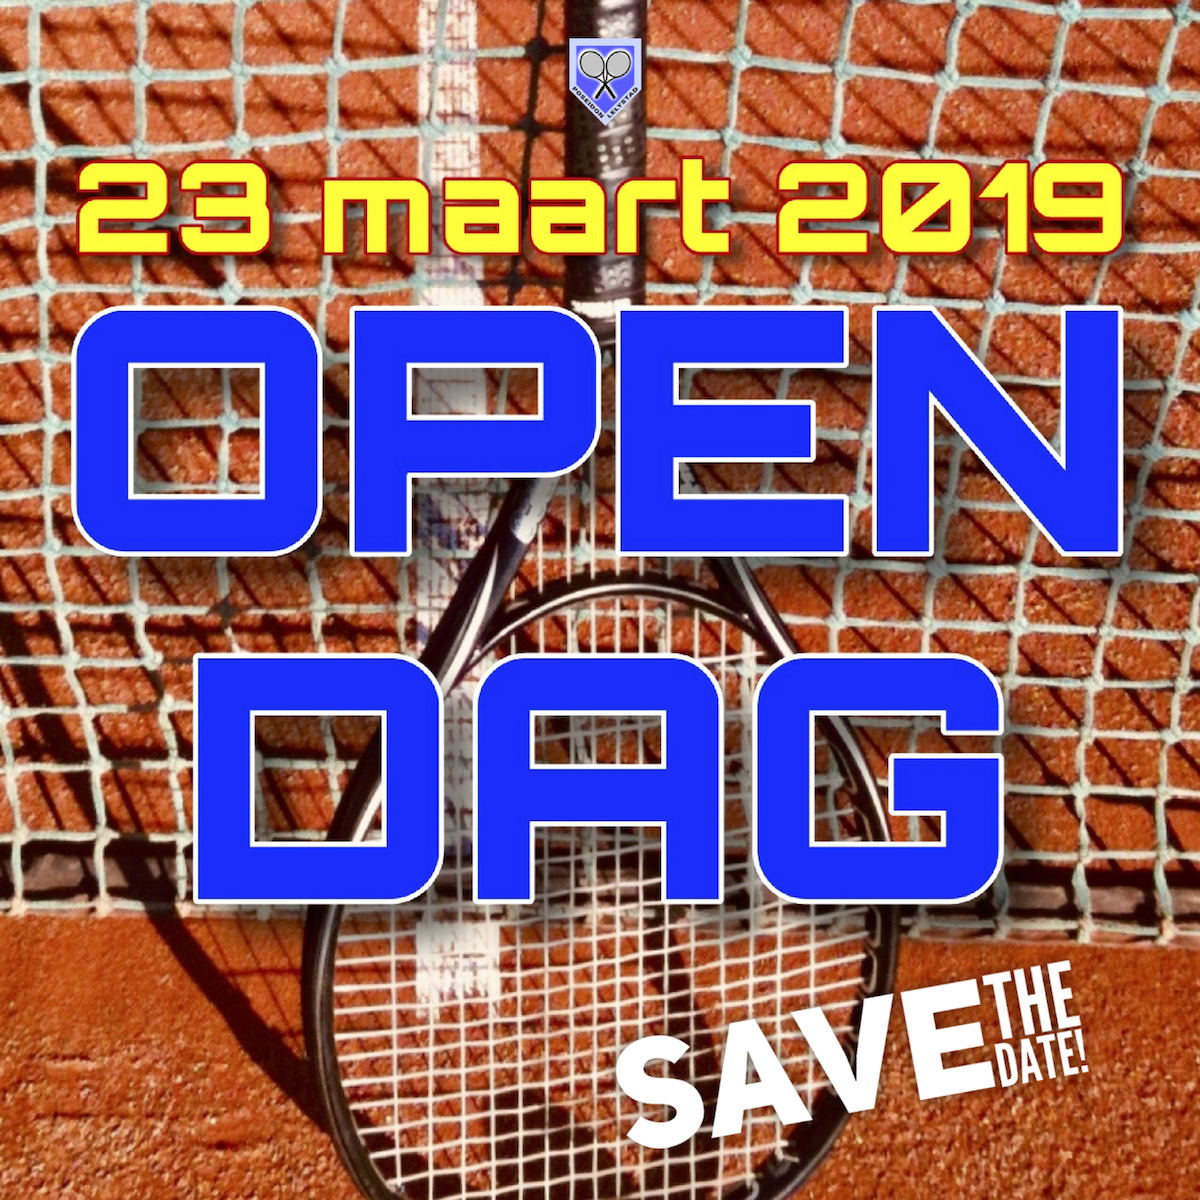 Open dag 2019 - Save the date